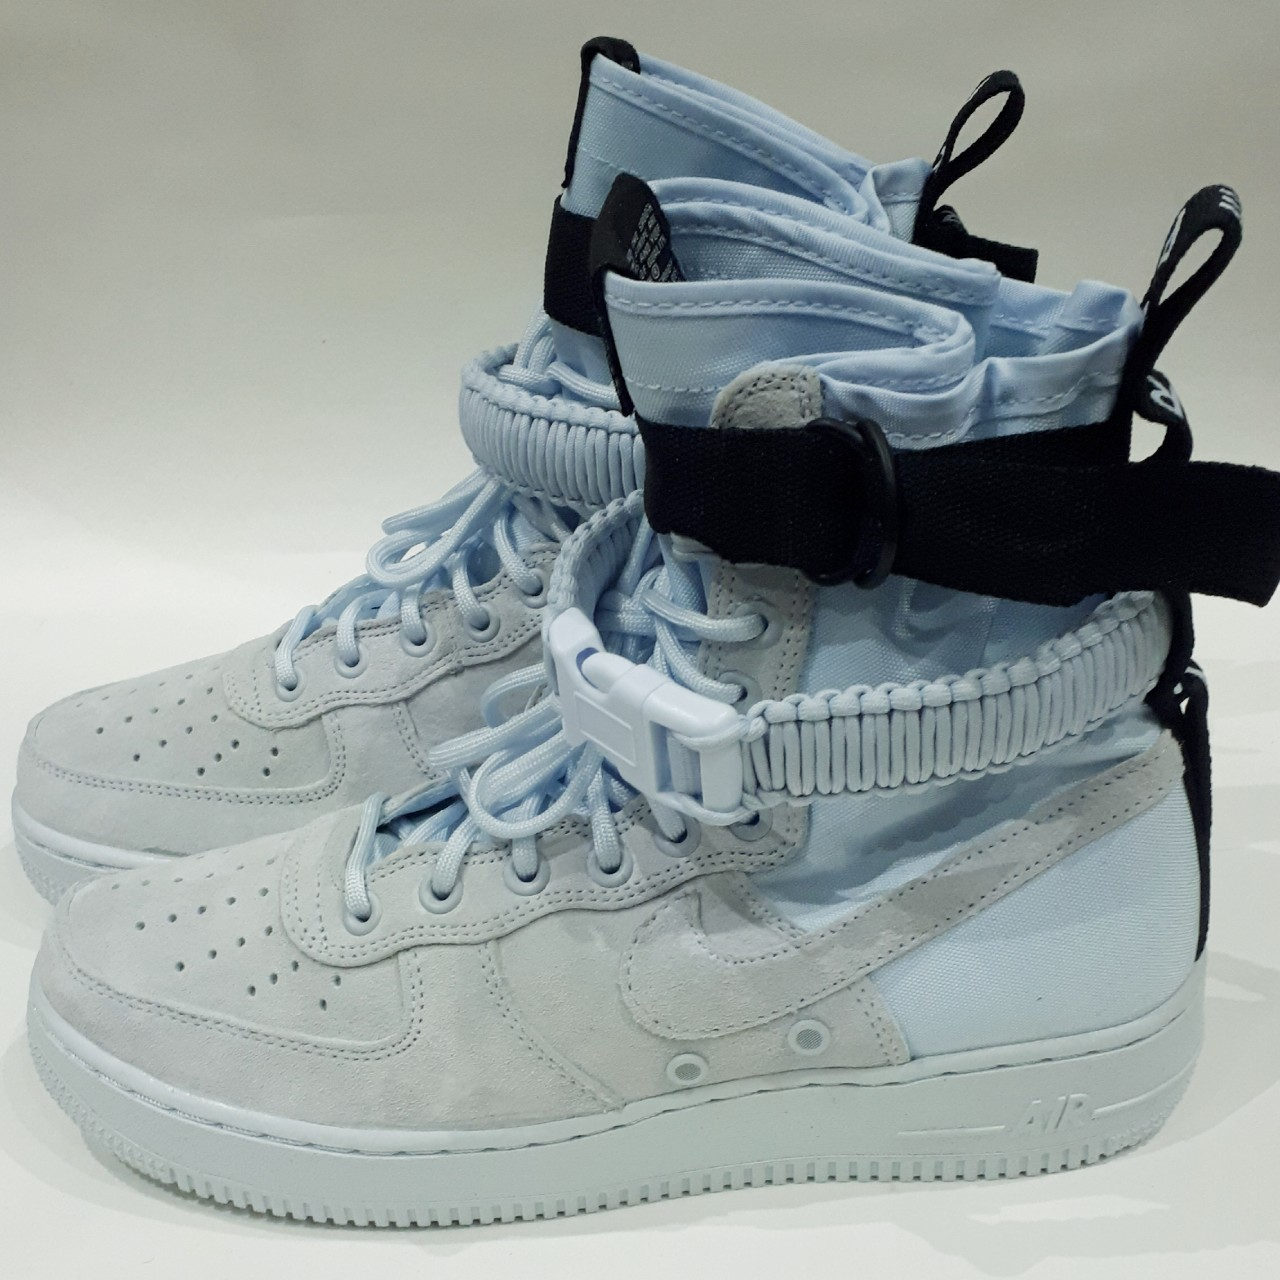 Mens Nike SF Air Force 1 High Blue Tint Size UK 7, Depop